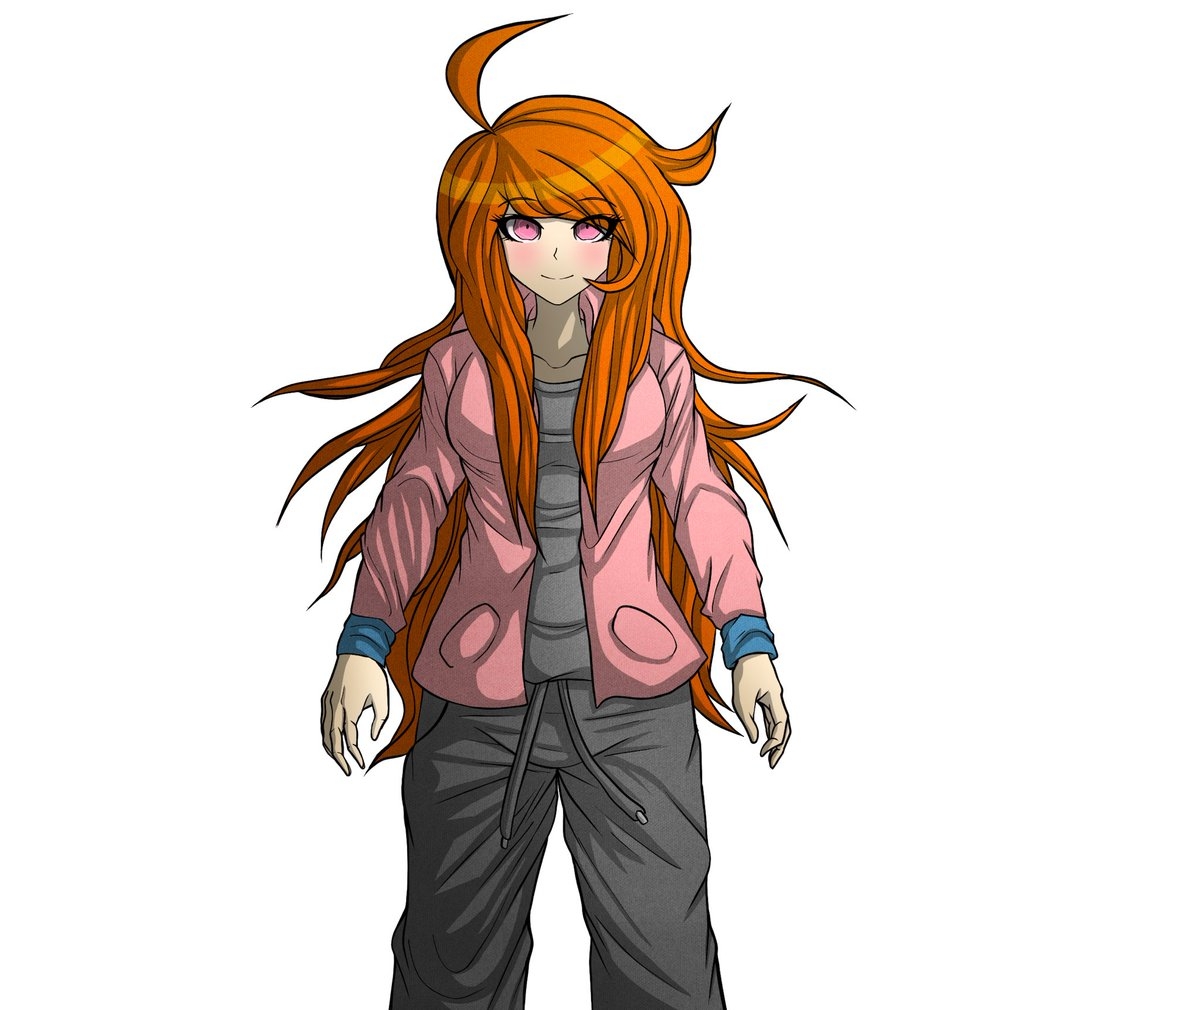 Lucahjin On Twitter Bahahahah The Pog Face It is unrelated to the danganronpa v3 game. twitter